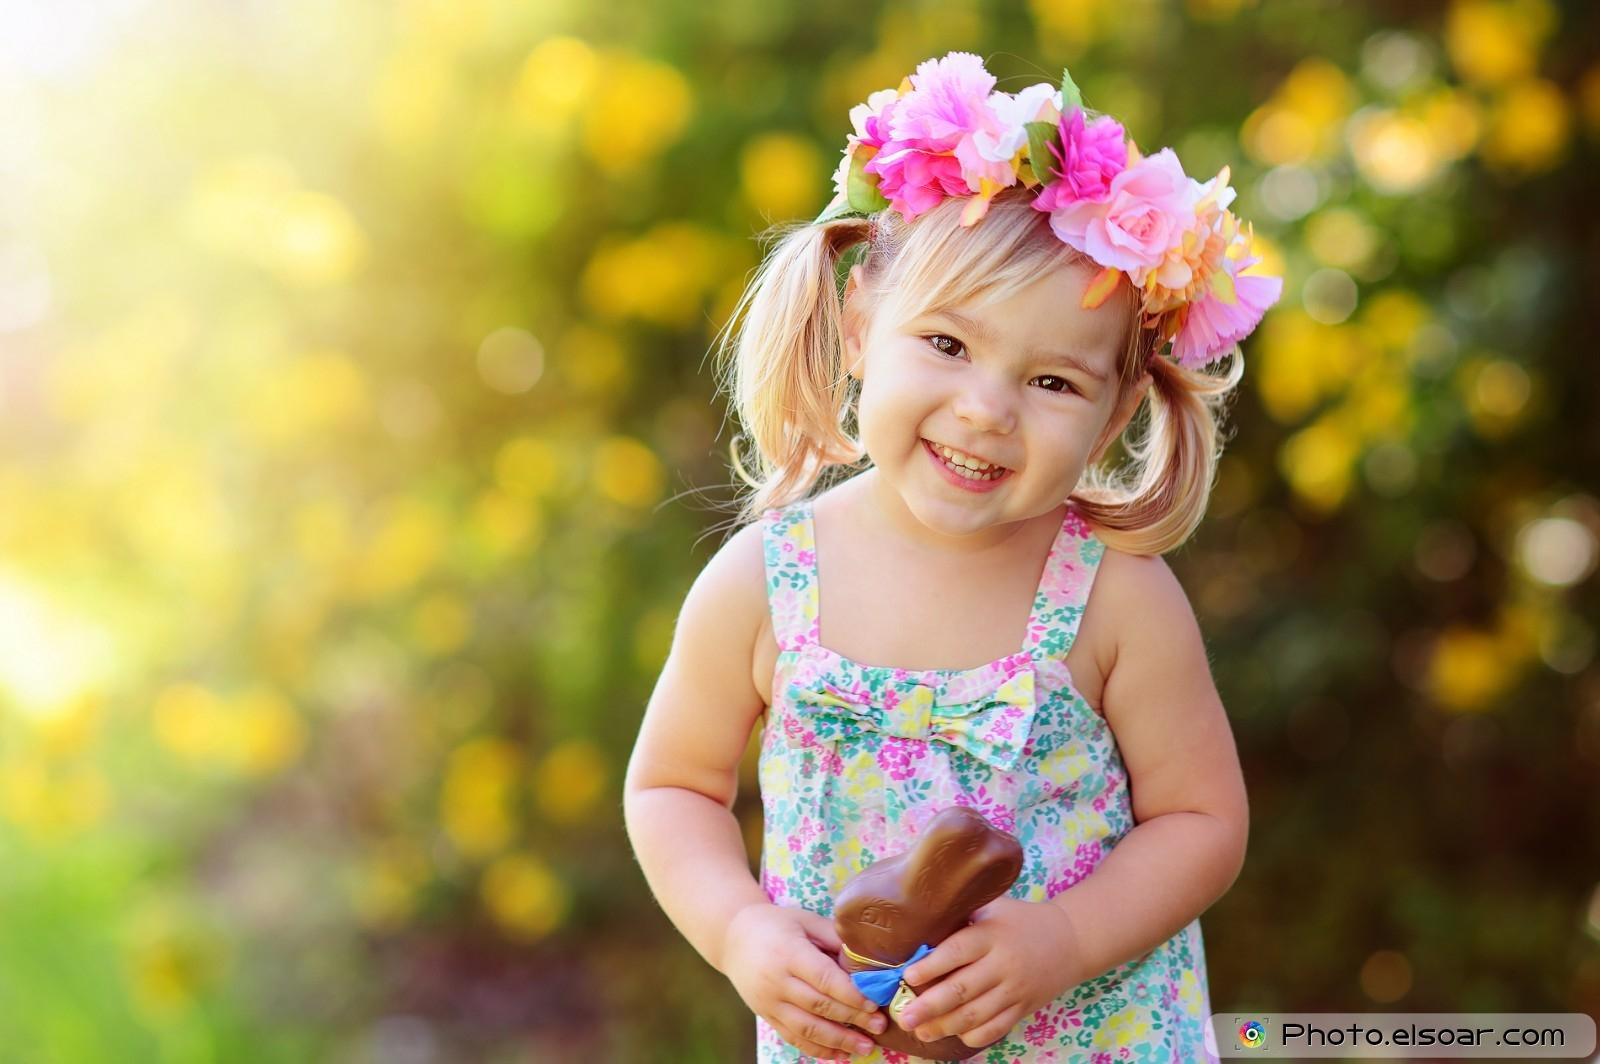 Wallpaper Cute Girl Free Download 10 Most Beautiful Little Girls With Uhq Pictures Elsoar